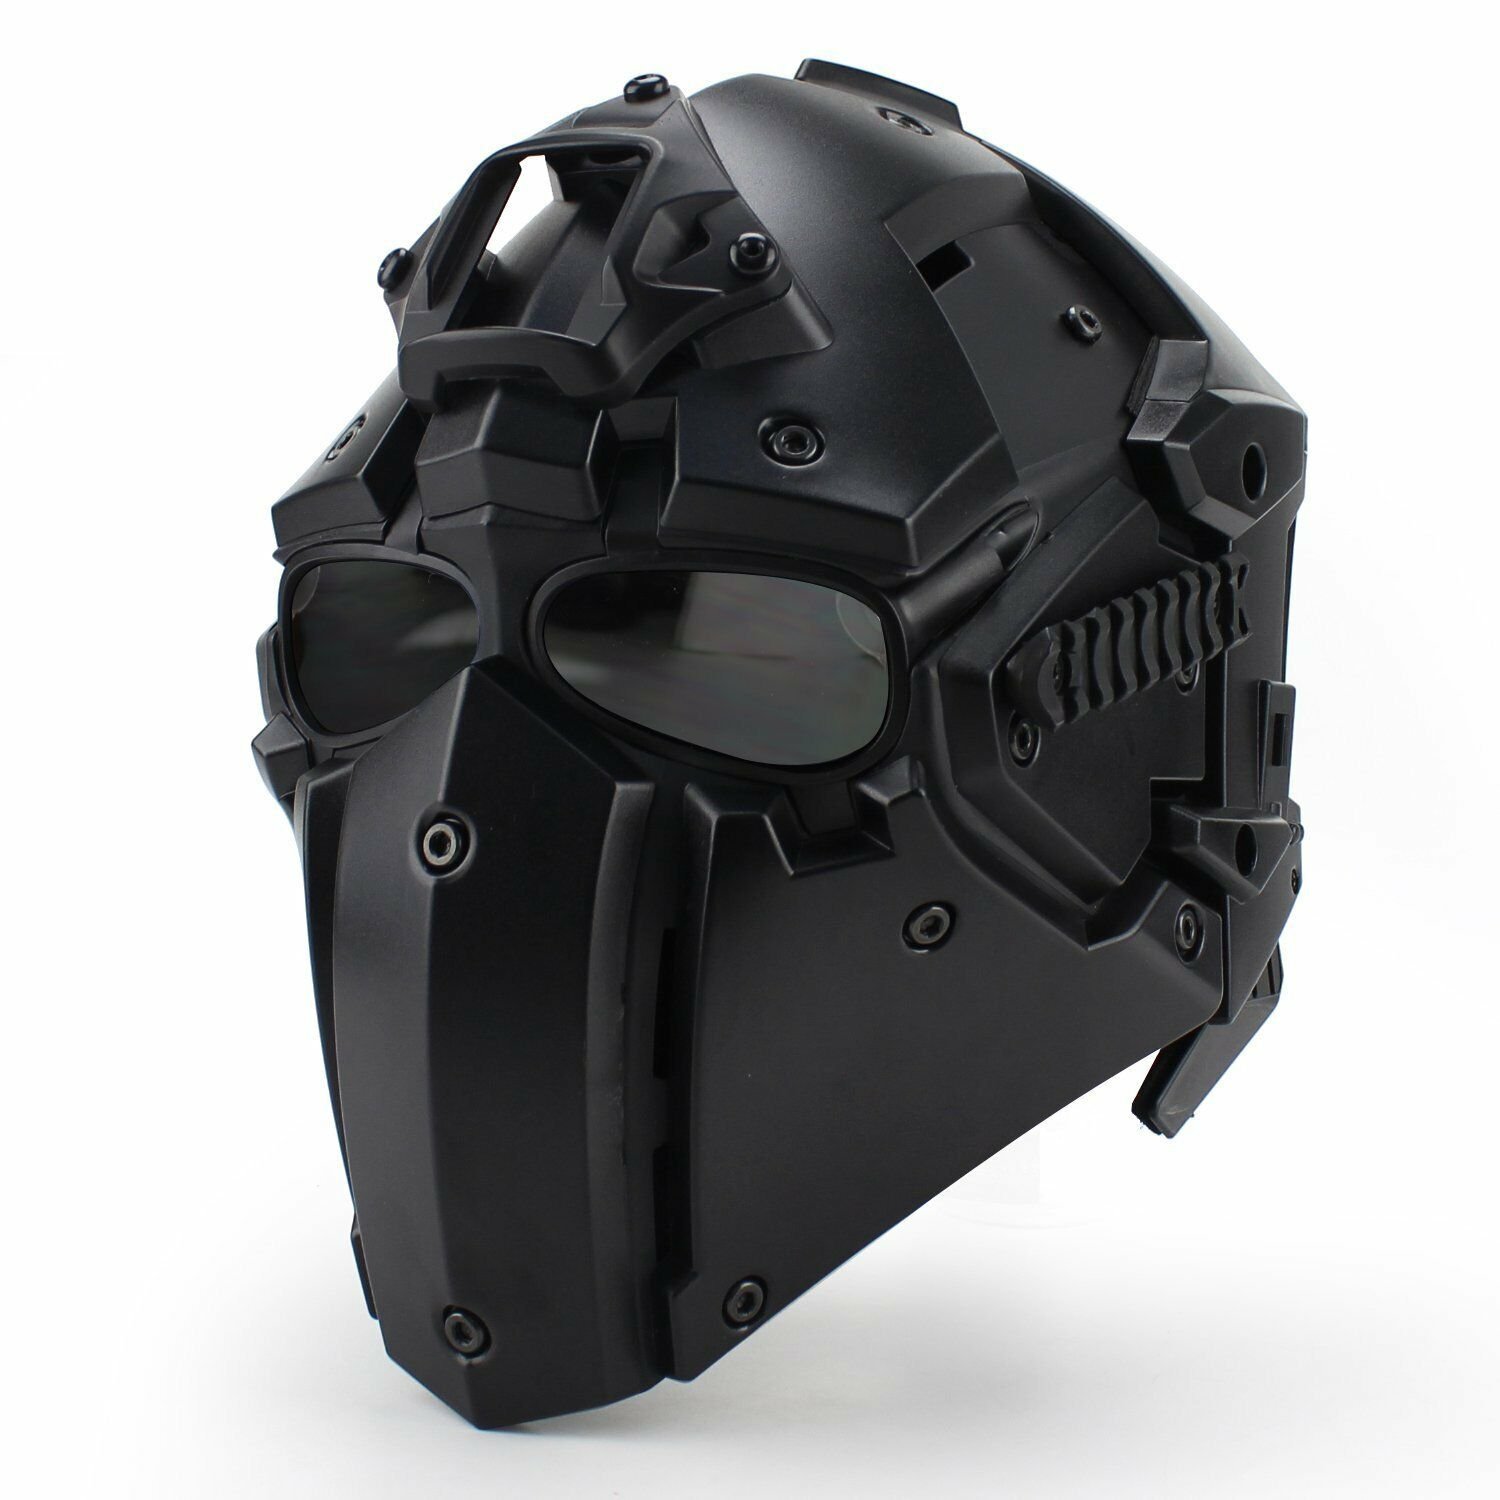 Tactical OBSIDIAN GREEN GOBL TERMINATOR Helmet & Mask for  Paintball Military  top brands sell cheap